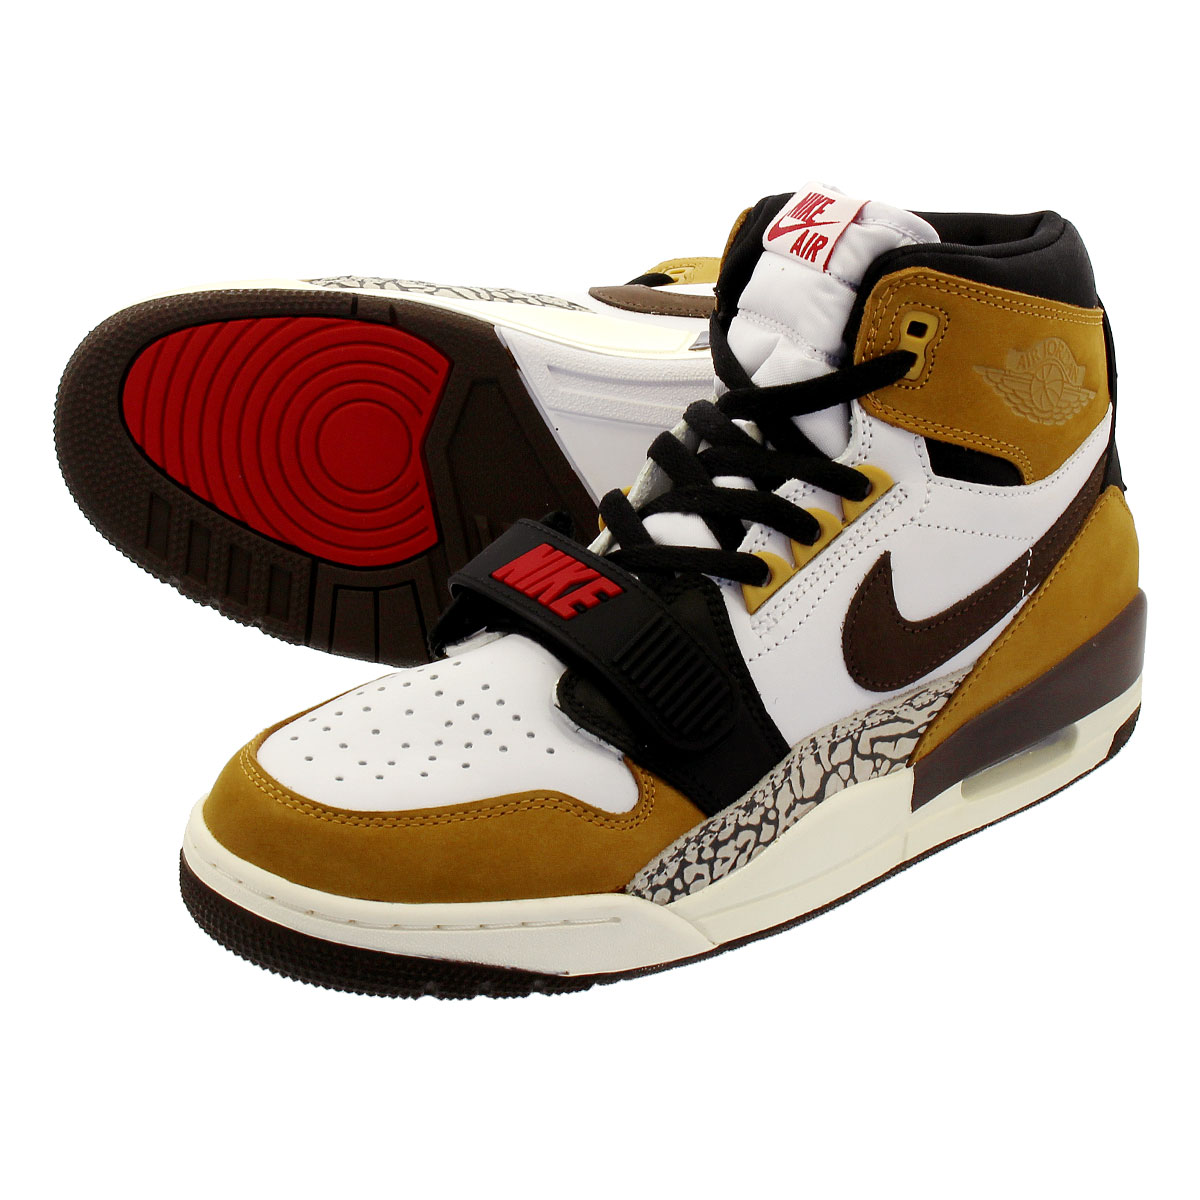 34d720ed93b456 NIKE AIR JORDAN LEGACY 312 Nike Air Jordan Legacy 312 WHITE BAROQUE  BROWN WHEAT VARSITY RED NIKE AIR JORDAN LEGACY 312 WHITE BAROQUE  BROWN WHEAT VARSITY RED ...